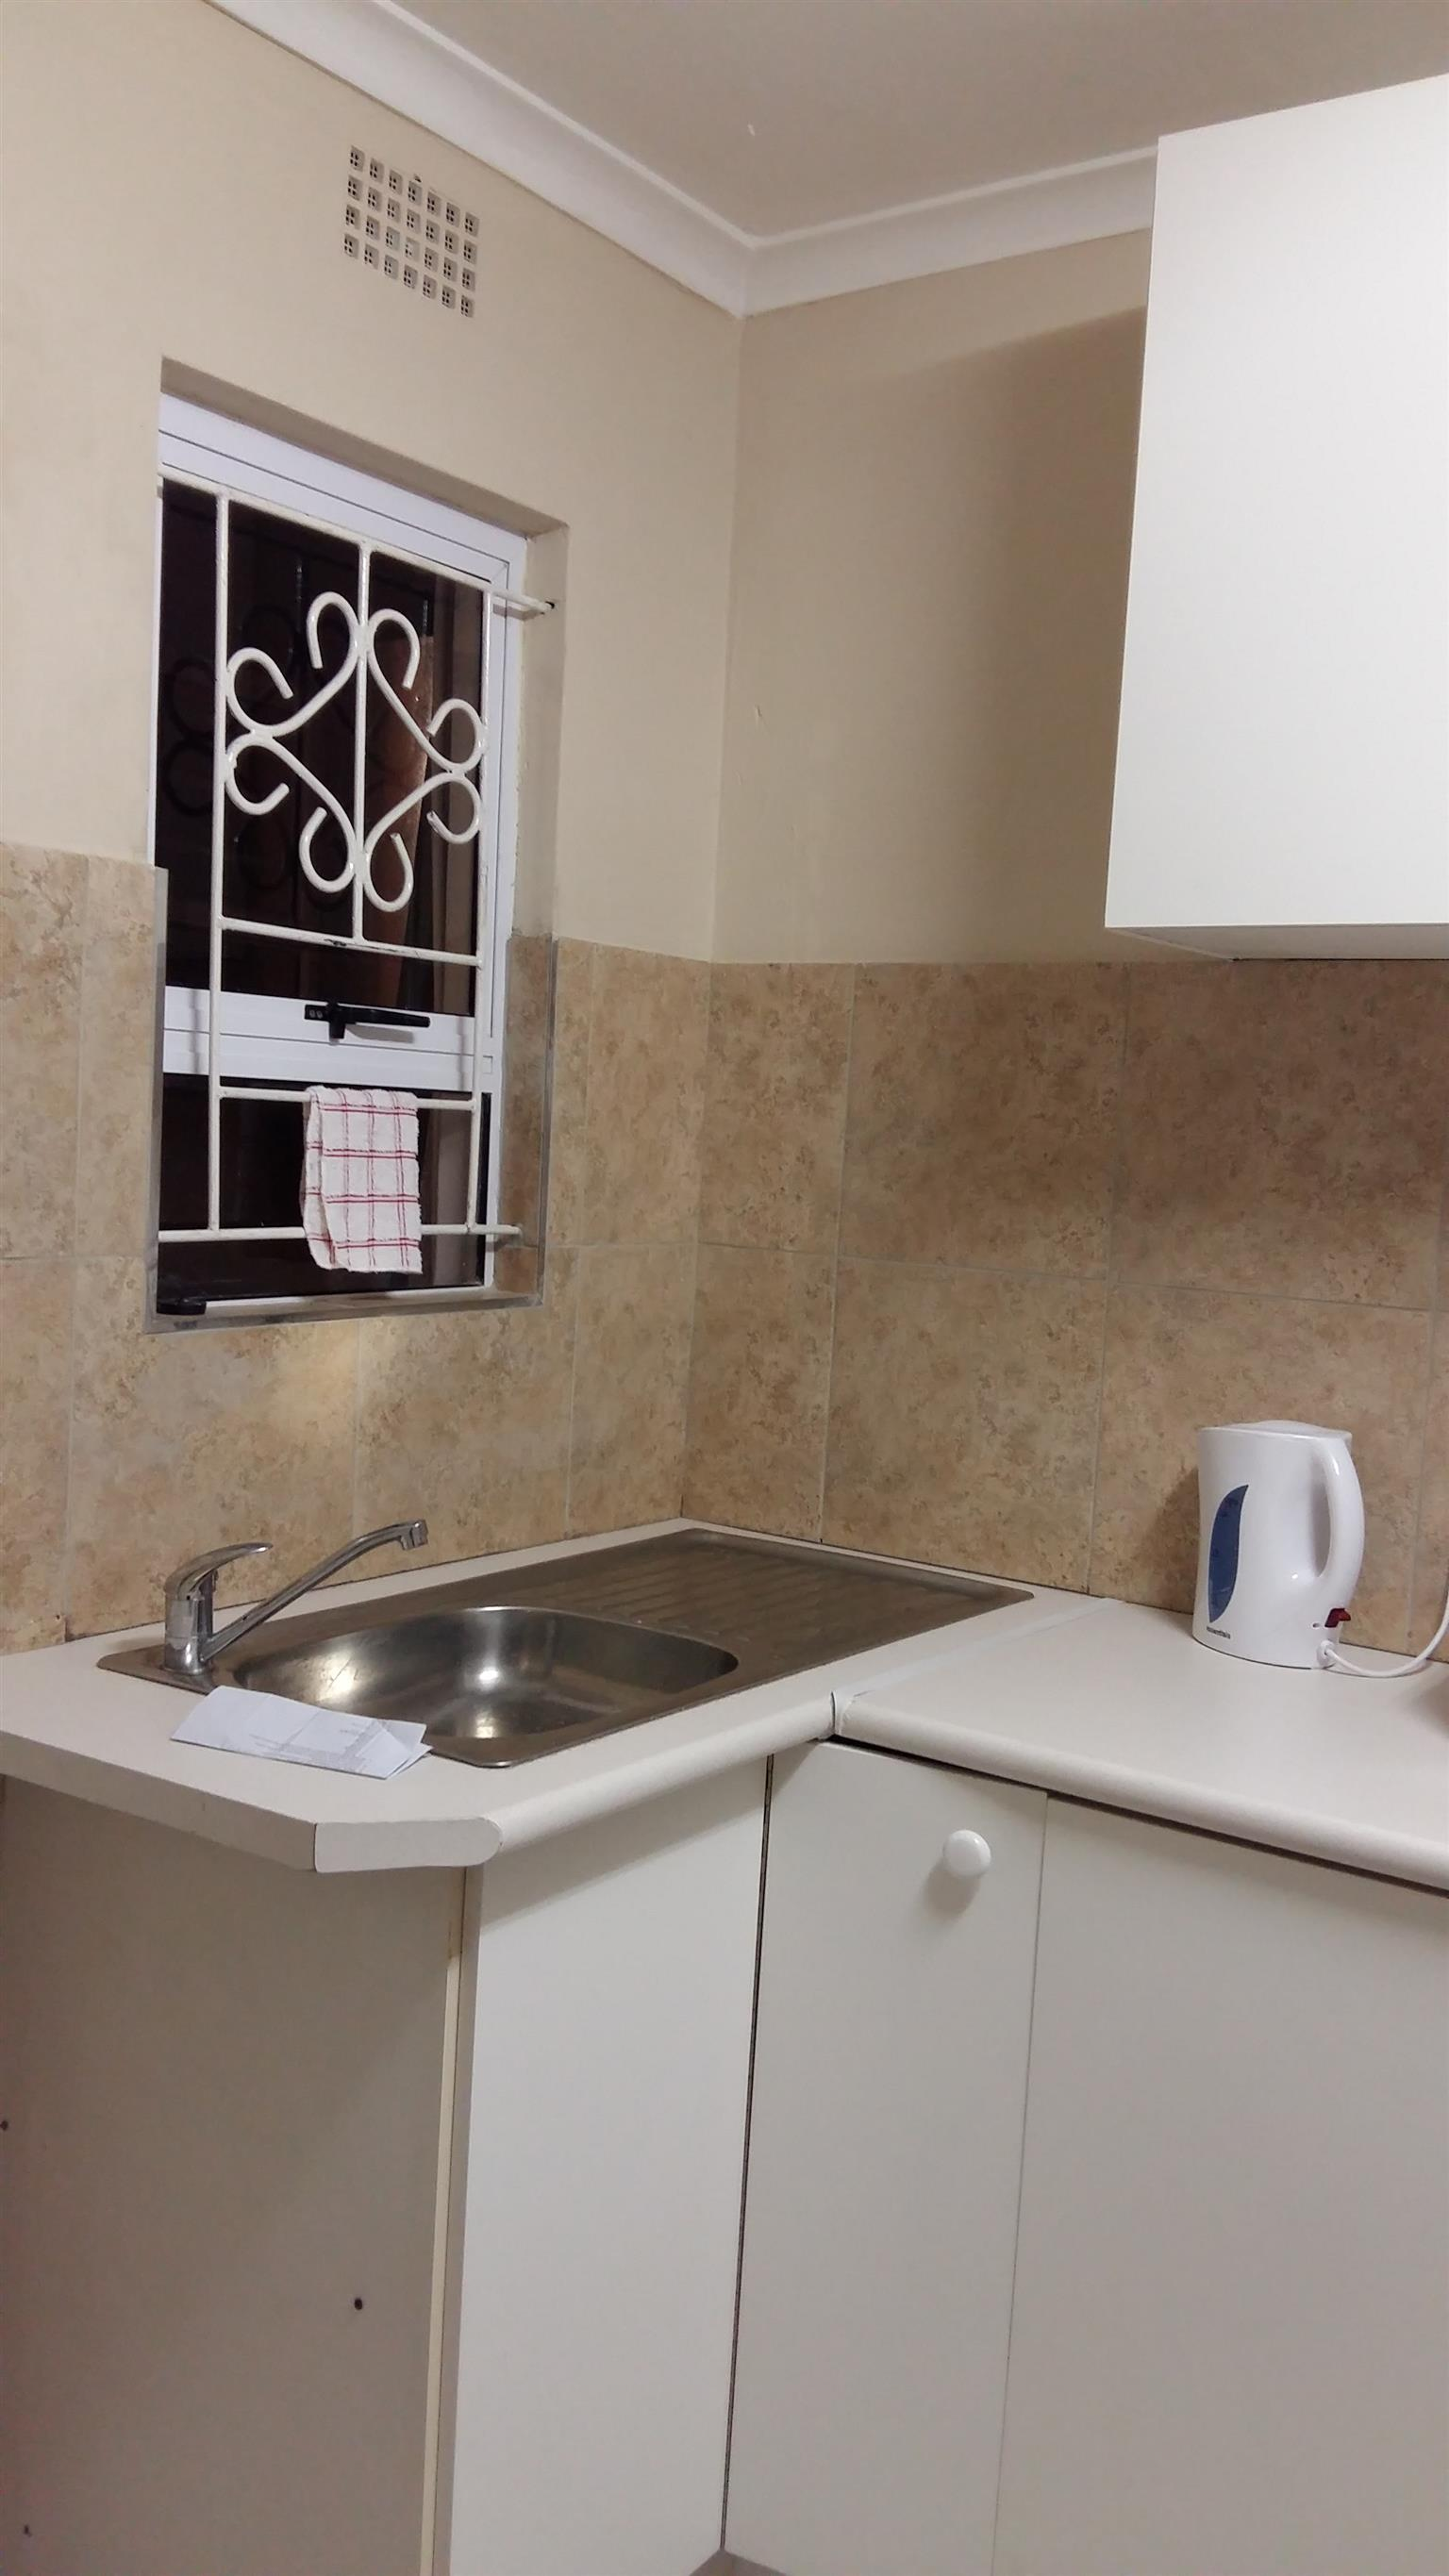 1 Furnished Room to rent in 3 bedroom separate entrance